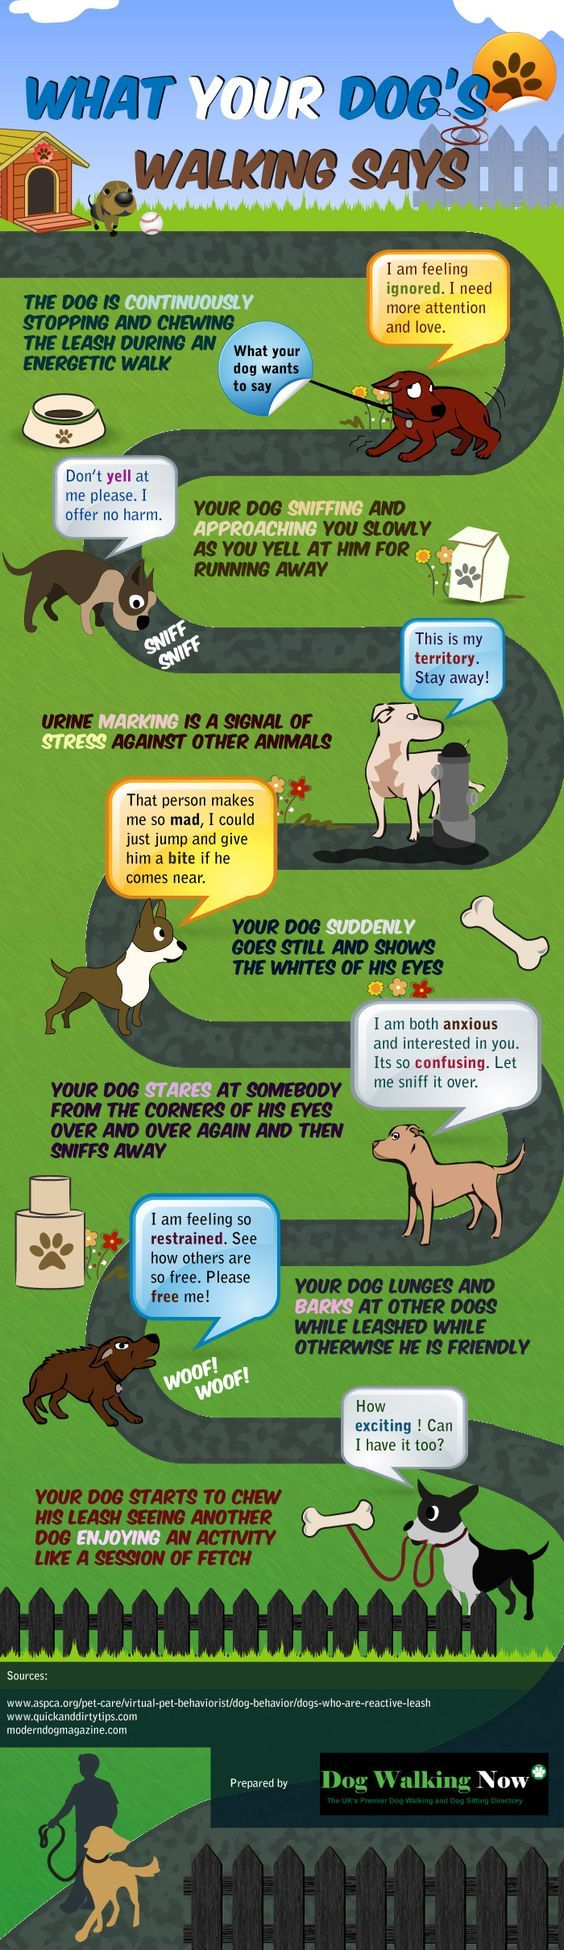 What Your Dog's Walking Style Says